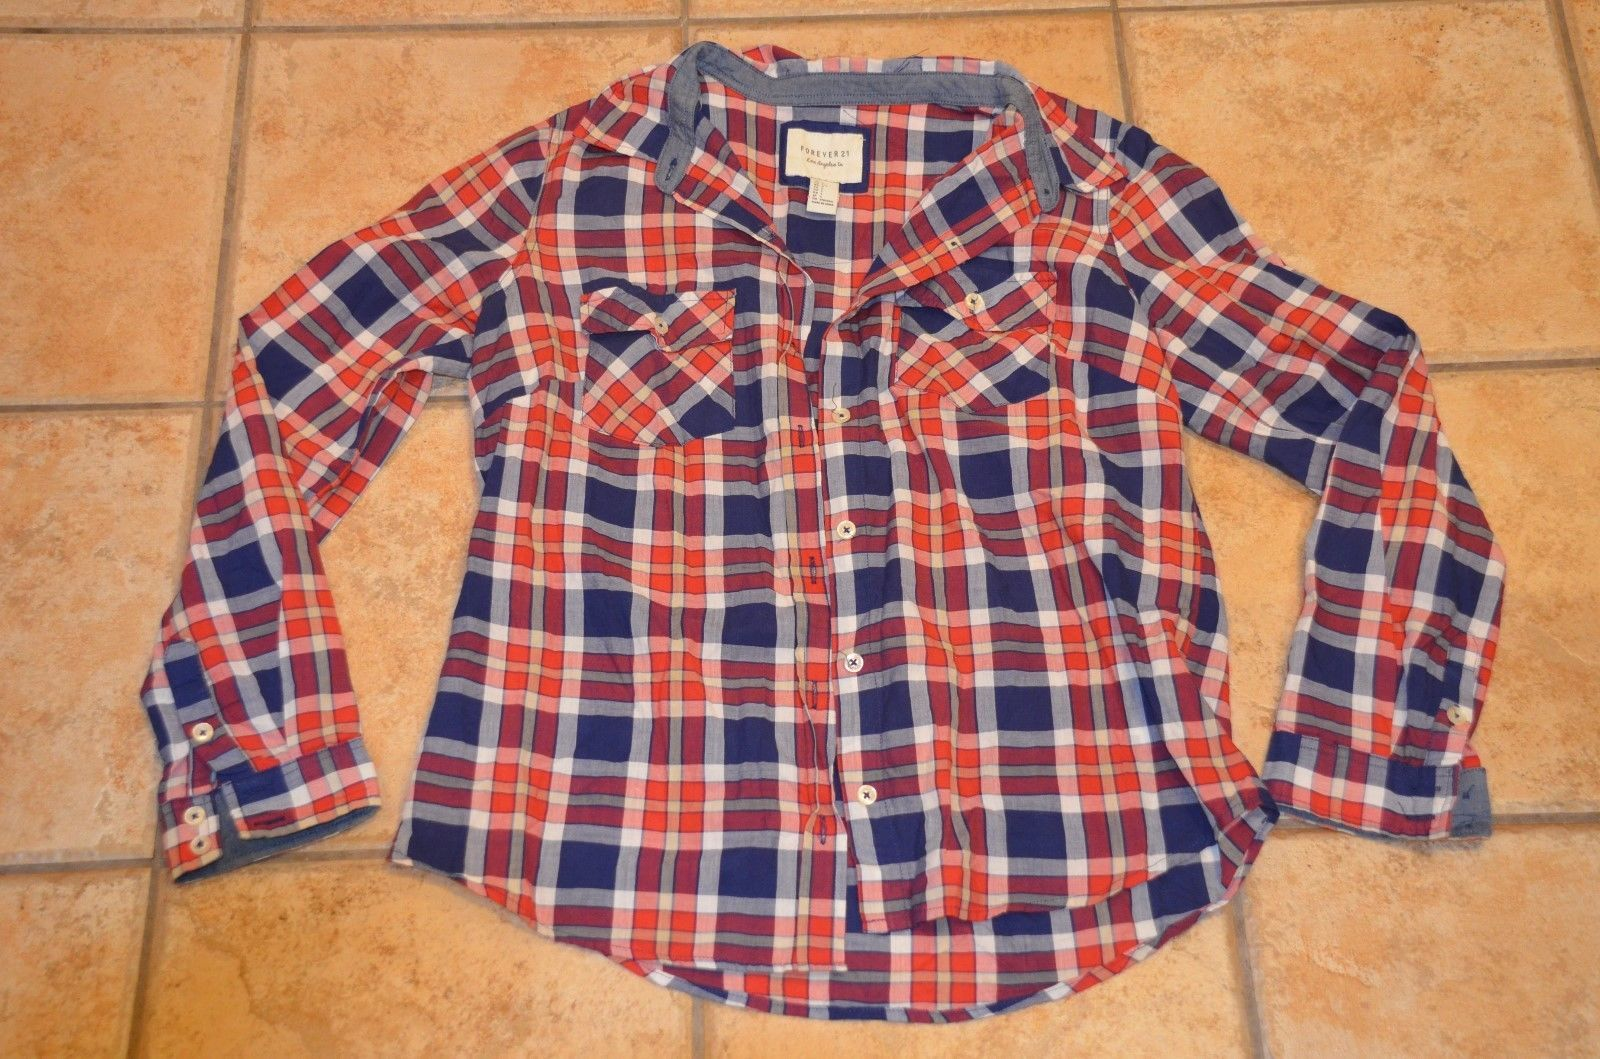 Primary image for FOREVER 21 RED NAVY BLUE PLAID Button Down SHIRT L  M CHEST POCKET COUNTRY EU